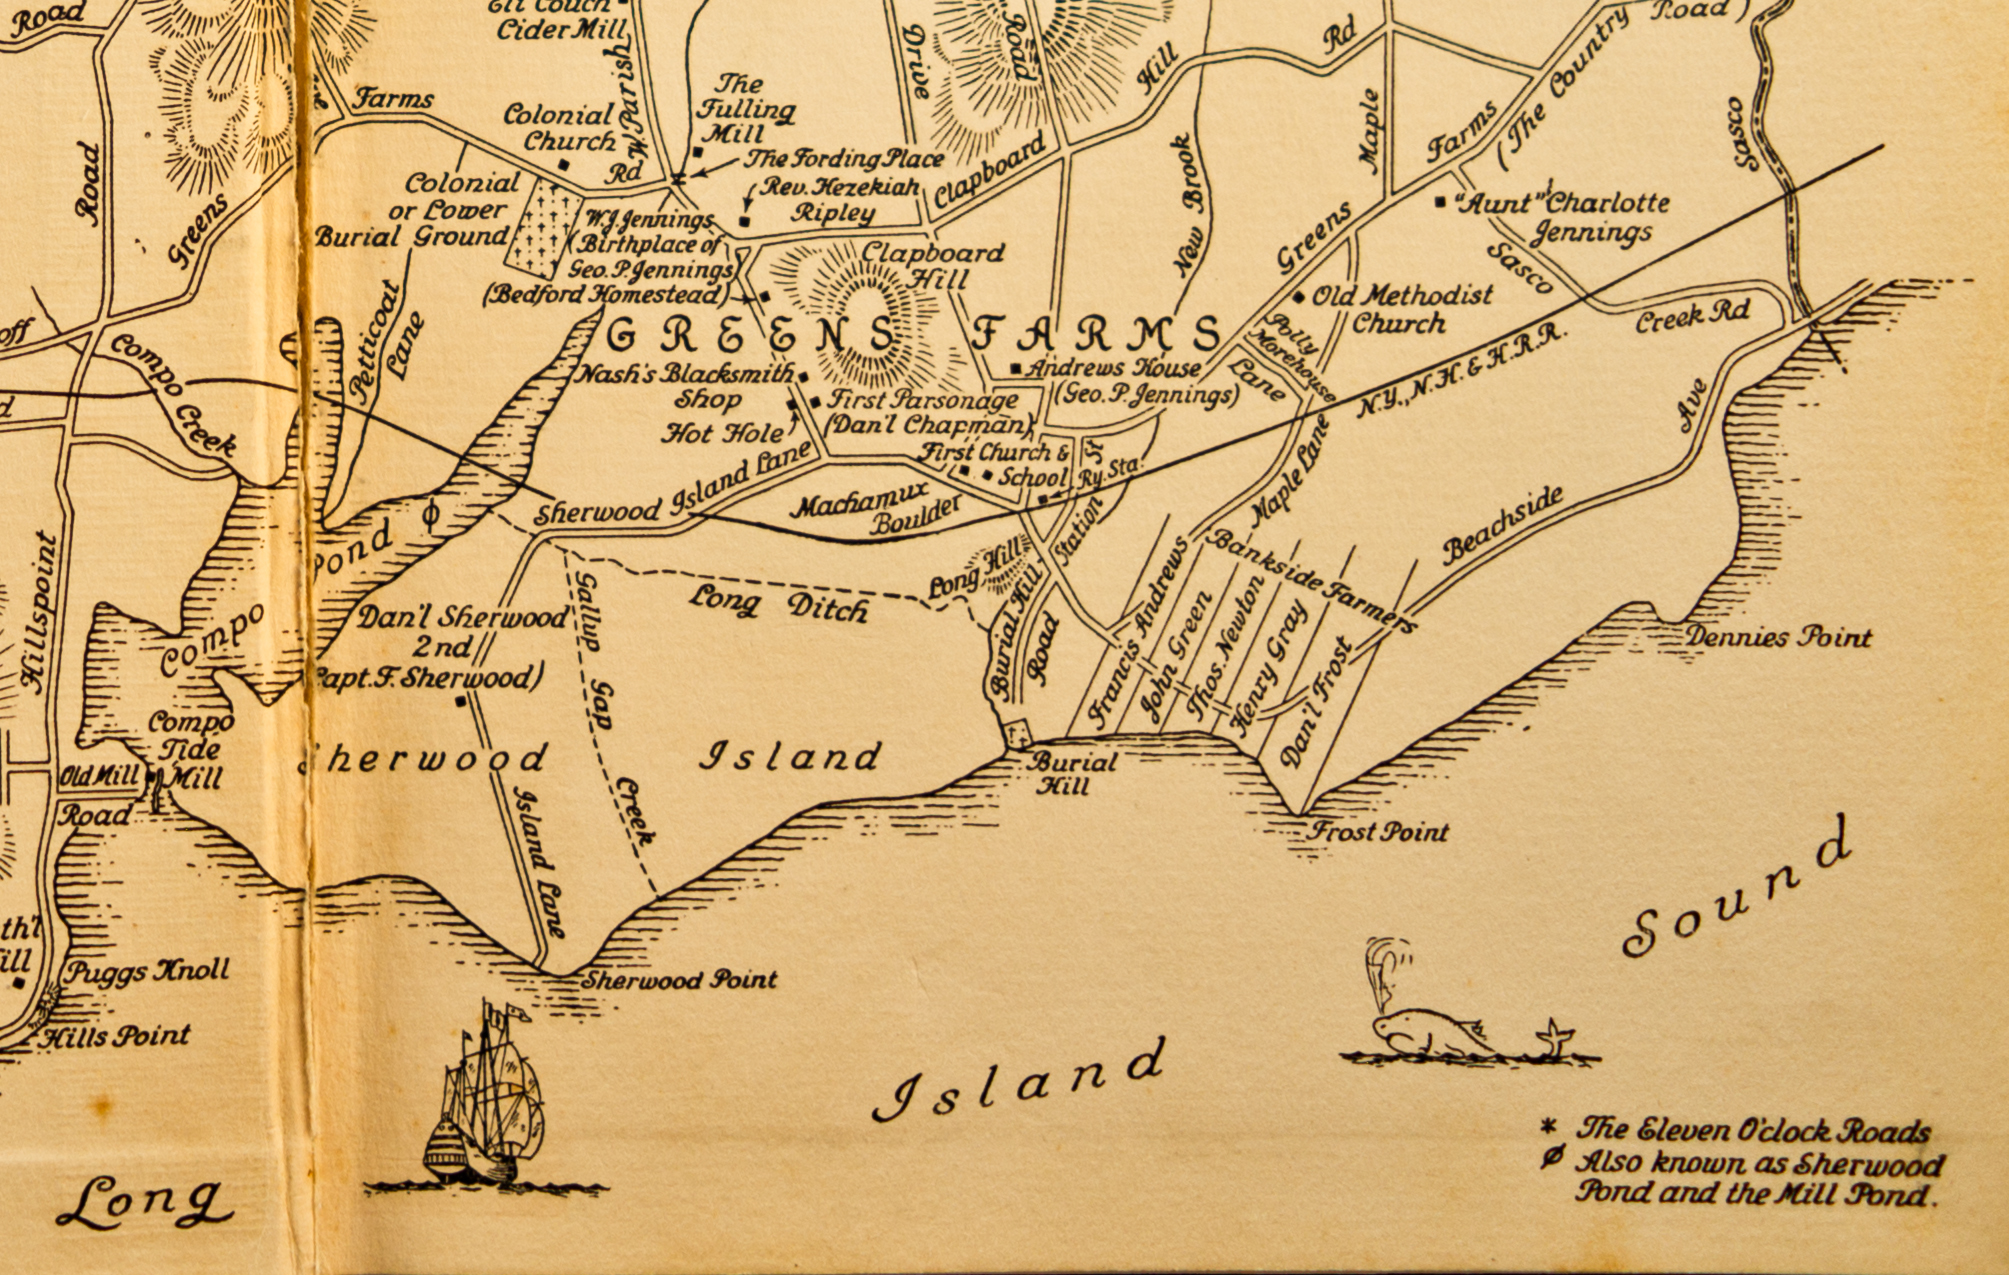 fileold map of westport ct showing greens farms. fileold map of westport ct showing greens farms  wikimedia